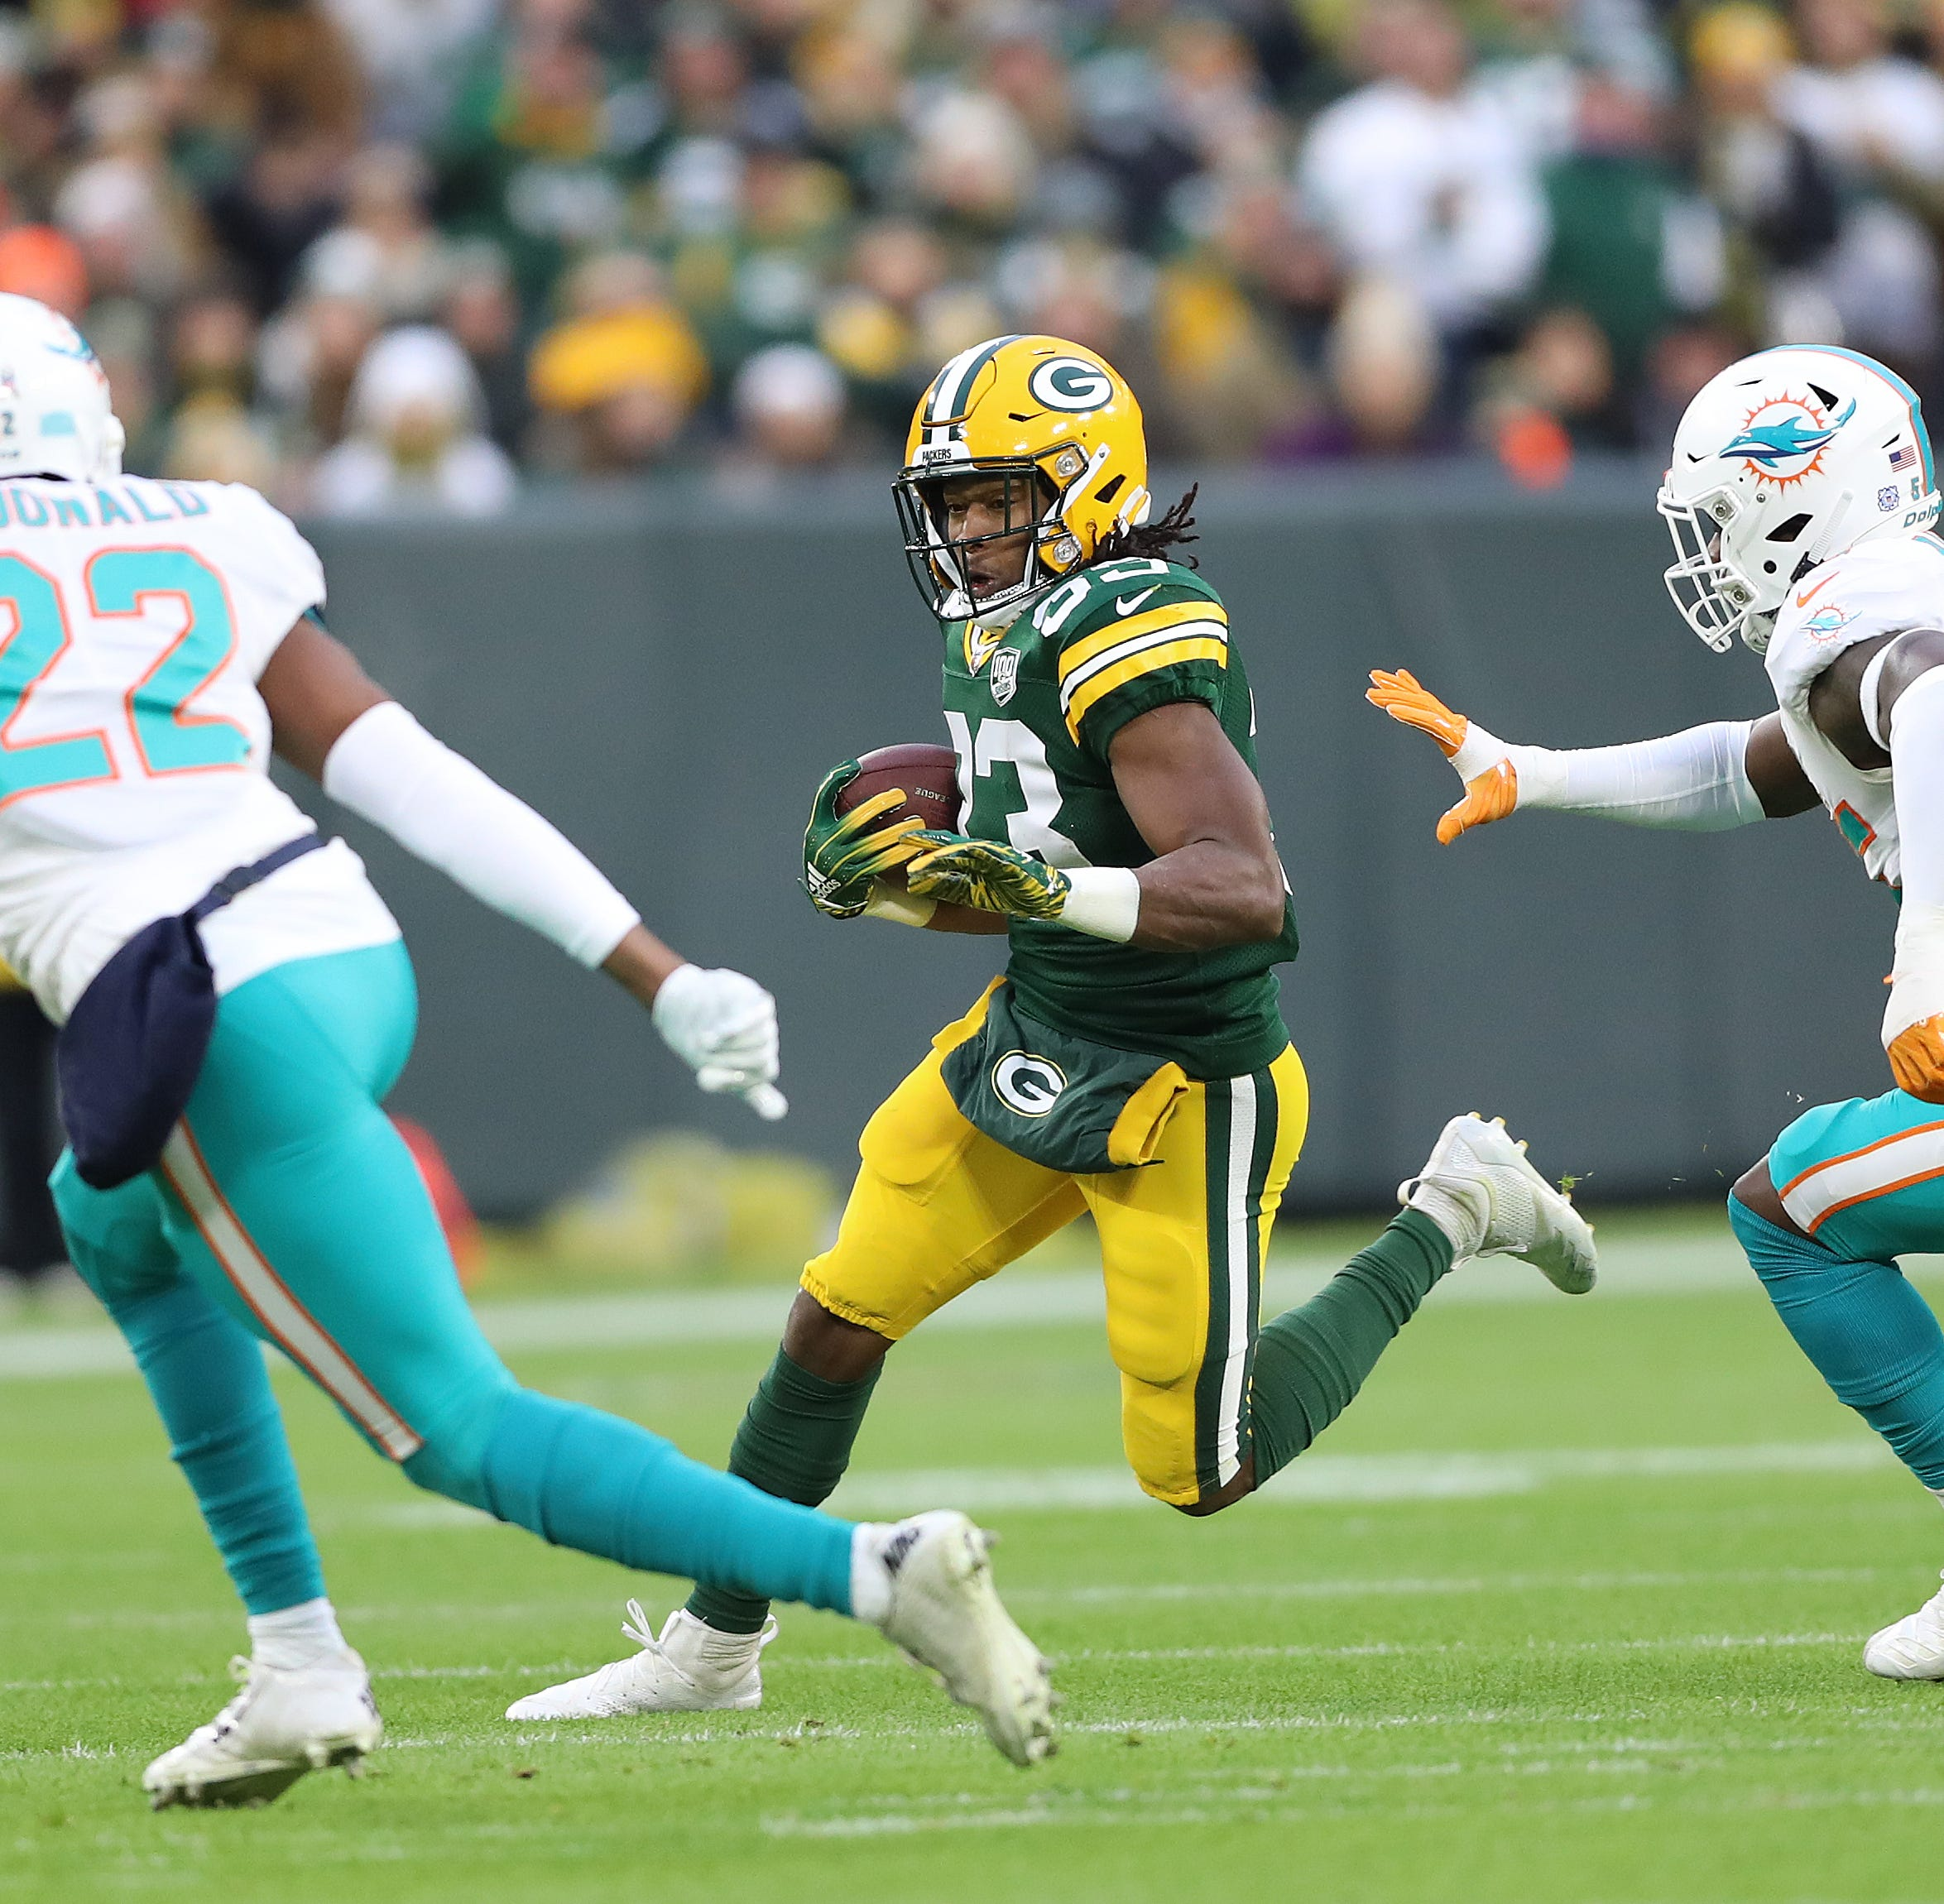 Aaron Jones makes impact among top Packers rushing performances in Aaron Rodgers era